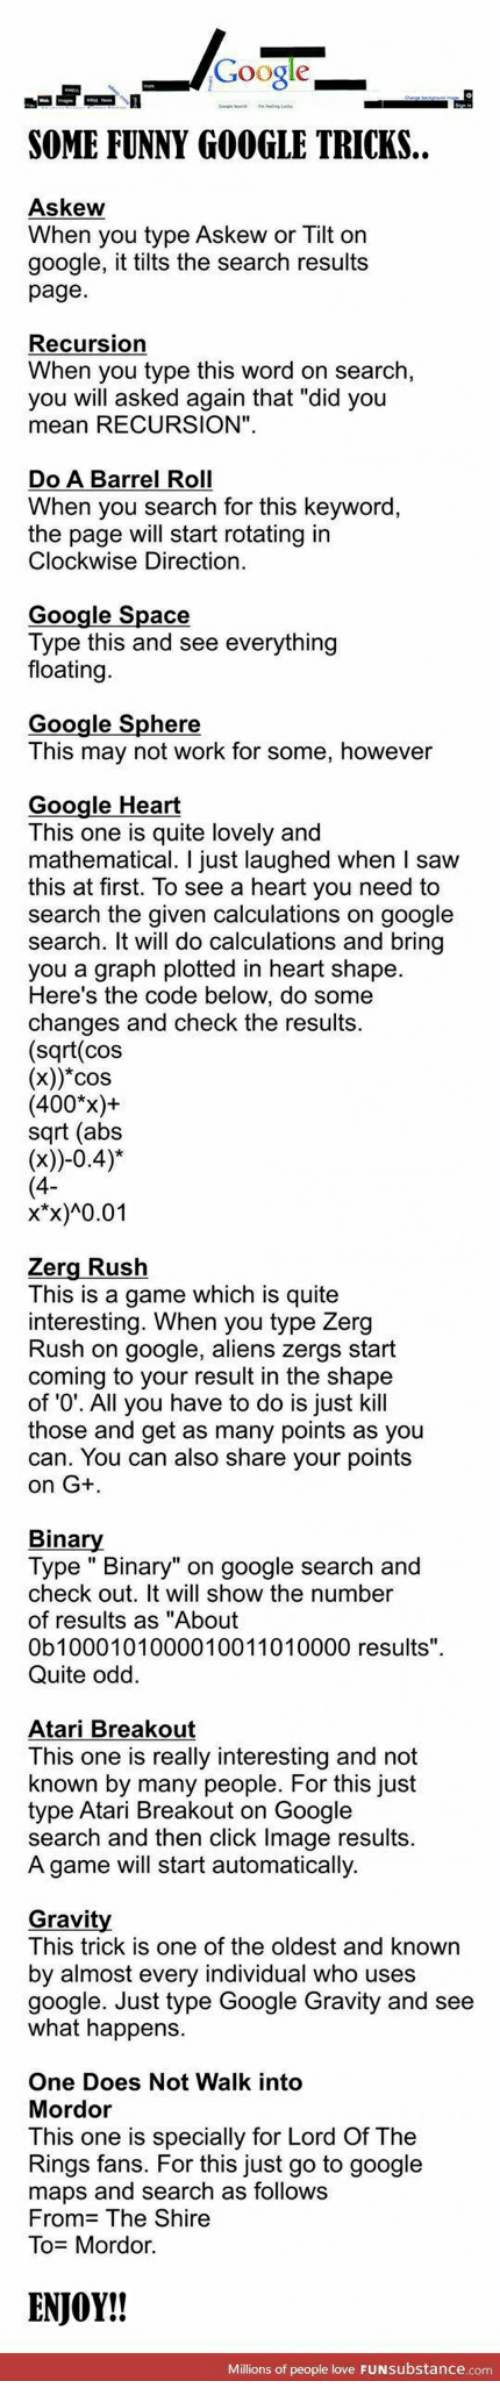 "zerg rush: Google  SOME FUNNY GOOGLE TRICKS.  Askew  When you type Askew or Tilt on  google, it tilts the search results  page.  Recursion  When you type this word on search,  you will asked again that ""did you  mean RECURSION"".  Do A Barrel Roll  When you search for this keyword,  the page will start rotating in  Clockwise Direction  Google Space  Type this and see everything  floating  Google Sphere  This may not work for some, however  Google Heart  This one is quite lovely and  mathematical. I just laughed when I saw  this at first. To see a heart you need to  search the given calculations on google  search. It will do calculations and bring  you a graph plotted in heart shape.  Here's the code below, do some  changes and check the results  (sqrt(cos  (x))*cos  (400%)+  sqrt (abs  x*x)A0.01  Zerg Rush  This is a game which is quite  interesting. When you type Zerg  Rush on google, aliens zergs start  coming to your result in the shape  of 0'. All you have to do is just kill  those and get as many points as you  can. You can also share your points  on G+  Binar  Type "" Binary"" on google search and  check out. It will show the number  of results as ""About  0b1000101000010011010000 results"".  Quite odd.  Atari Breakout  This one is really interesting and not  known by many people. For this just  type Atari Breakout on Google  search and then click Image results  A game will start automatically.  Gravit  This trick is one of the oldest and known  by almost every individual who uses  google. Just type Google Gravity and see  what happens  One Does Not Walk into  Mordor  This one is specially for Lord Of The  Rings fans. For this just go to google  maps and search as follows  From The Shire  To Mordor.  ENJOY!!  Millions of people love FUNsubstance.com"